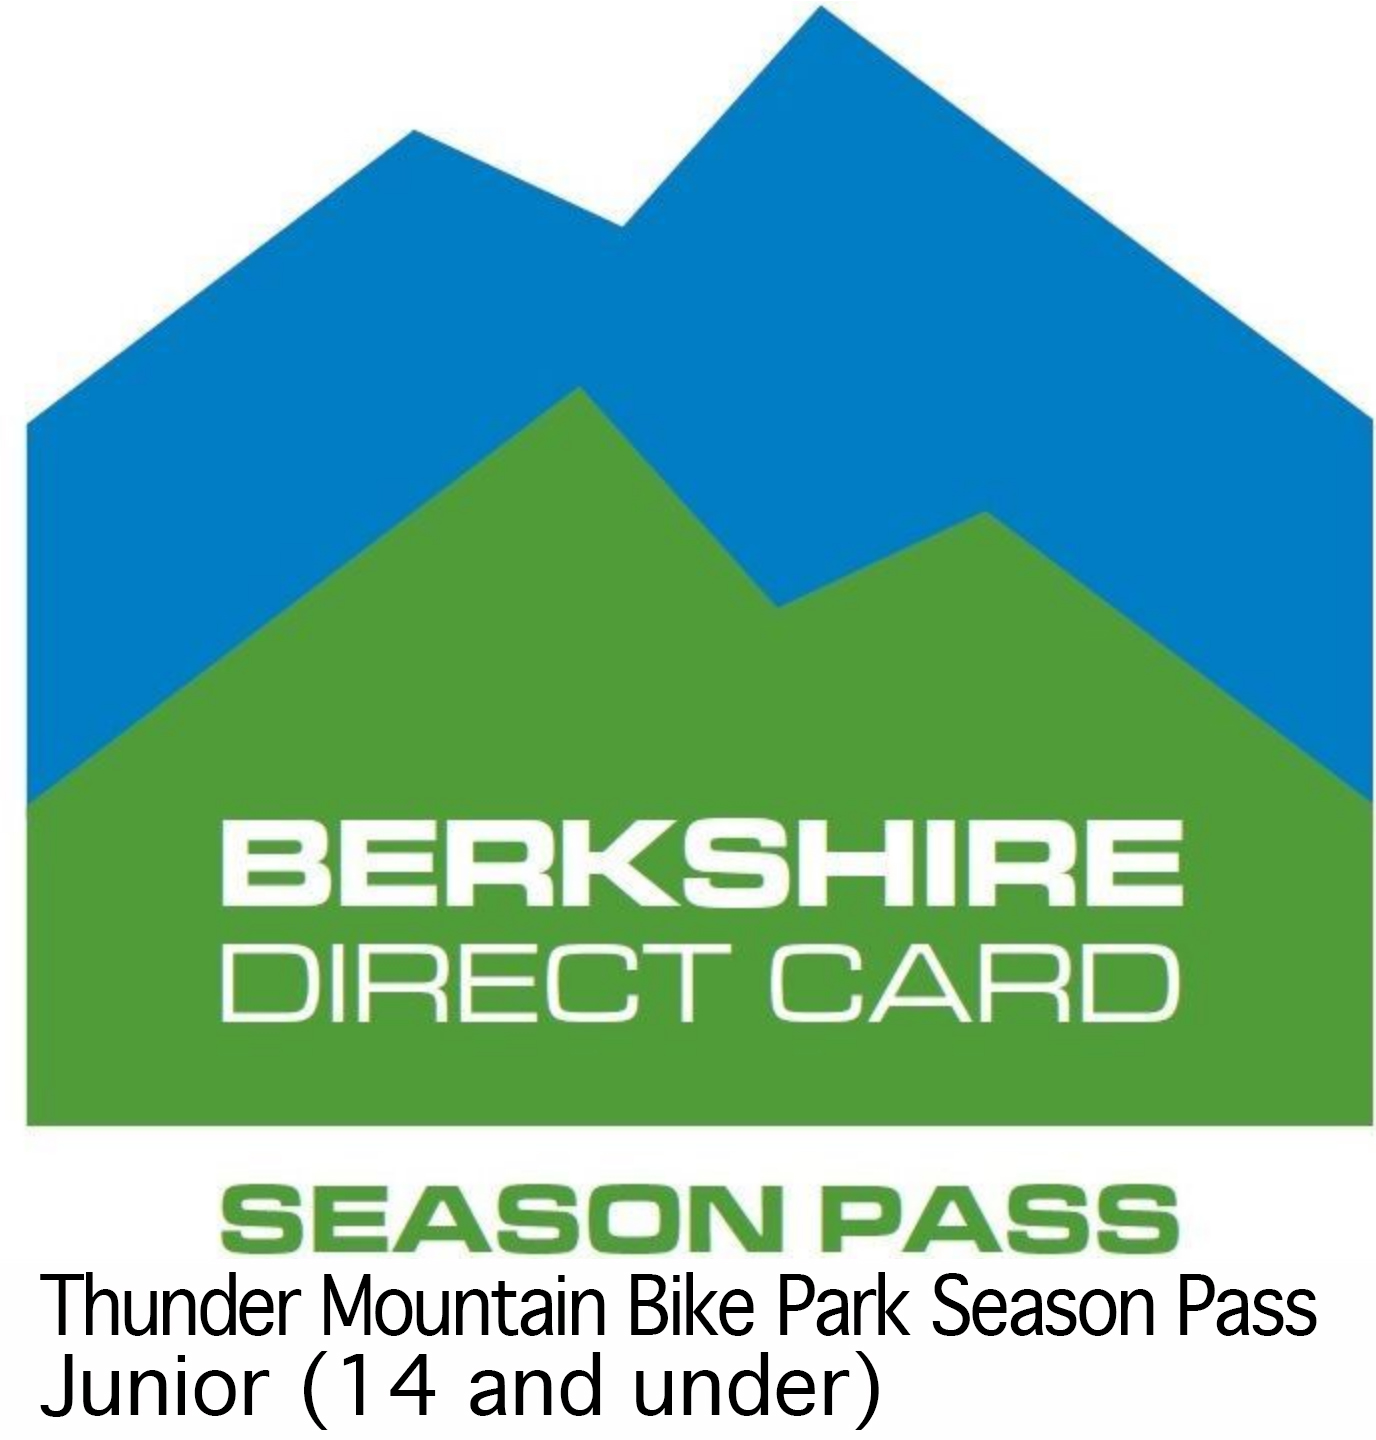 Thunder Mountain Bike Park Season Pass Junior (14 and under) - Season pass for the 2019 season. Junior passes are for ages 14 and under. $229